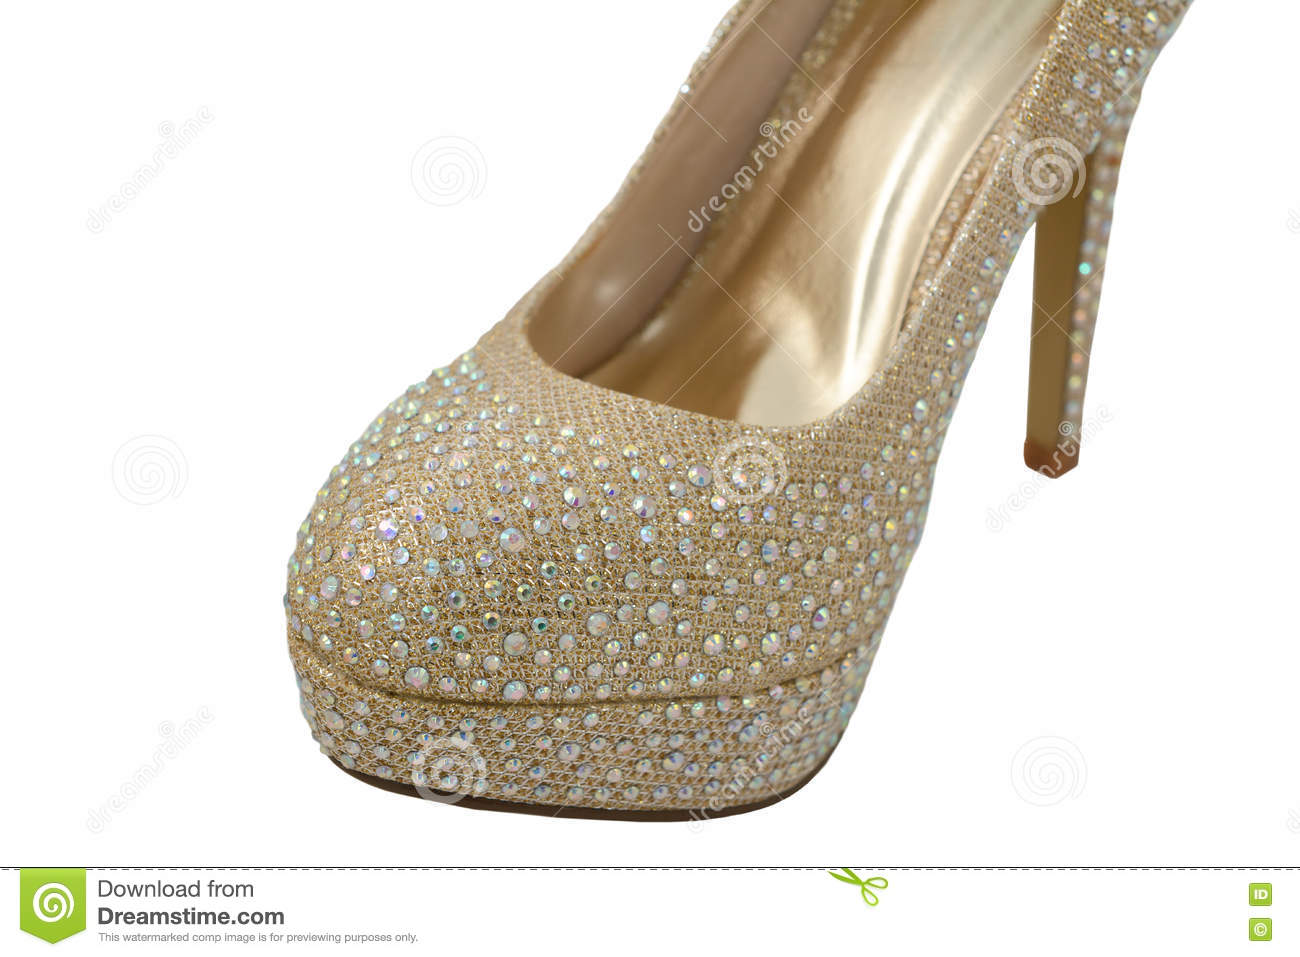 90b608077f Close-up of a fashionable high-heeled shoe, gold fabric covered in  glittering gems, isolated on a white background